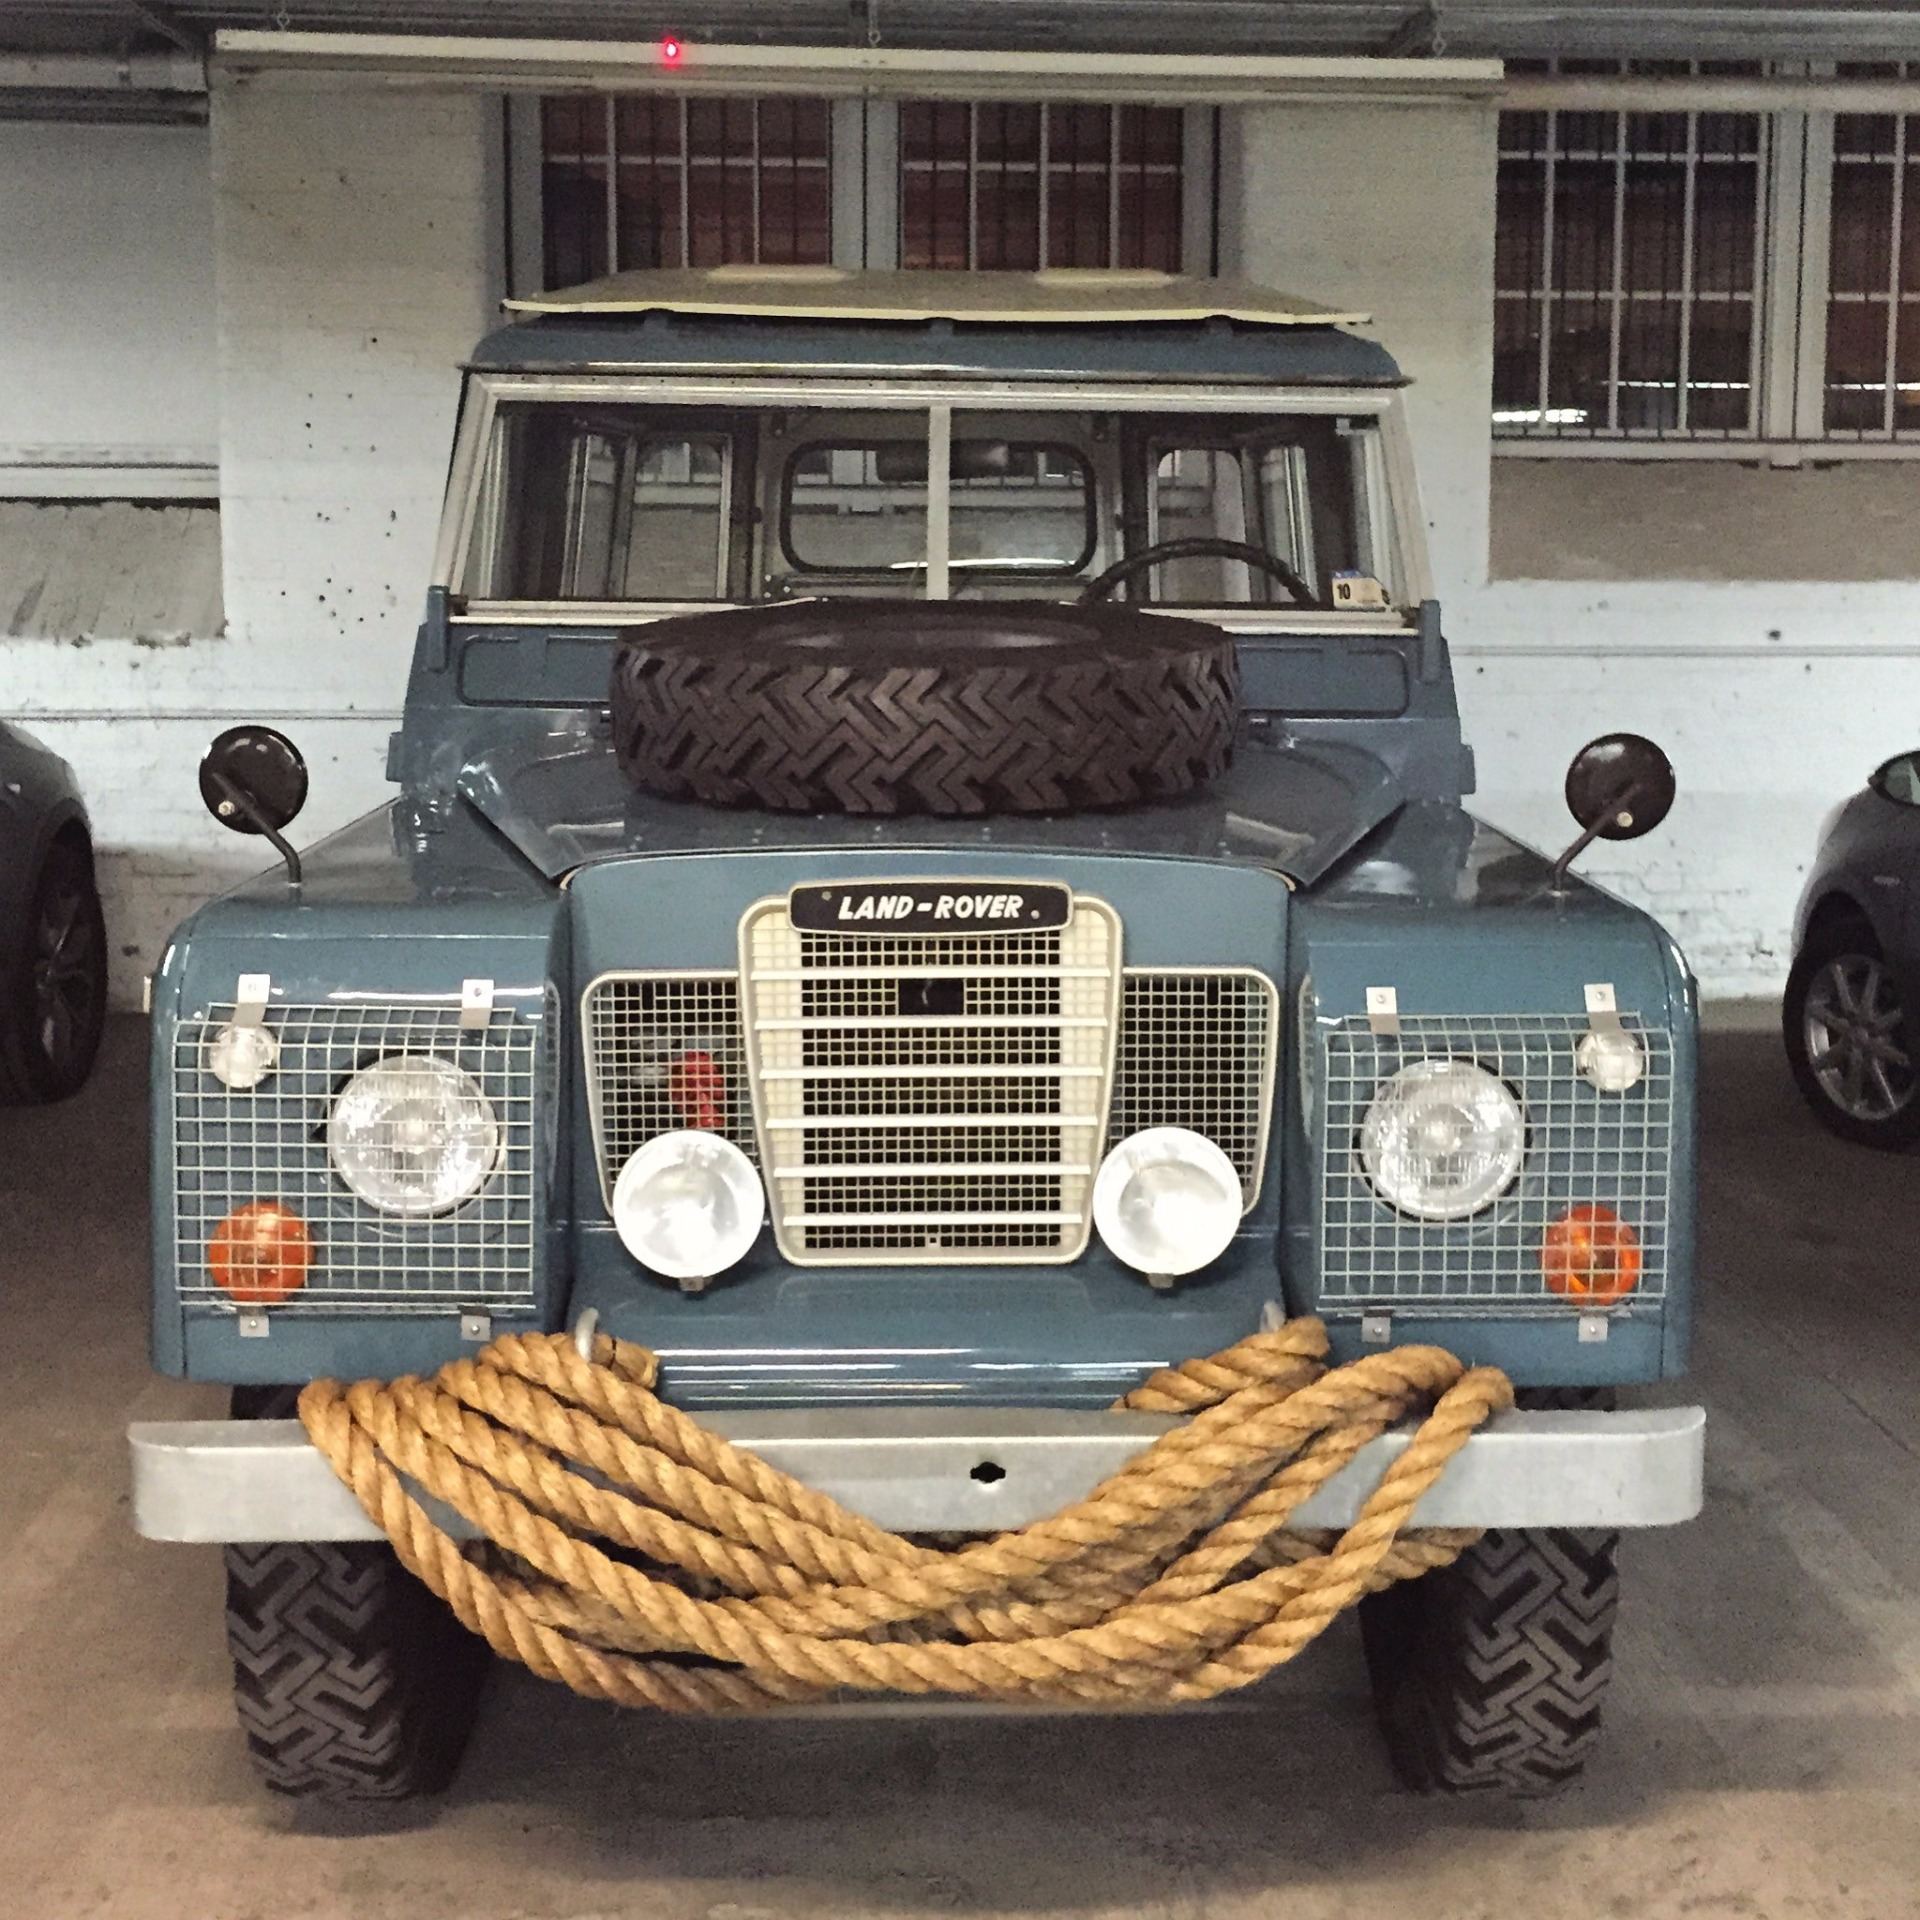 1973 LAND ROVER Series III Stock # 73LANDROVERS3 For Sale